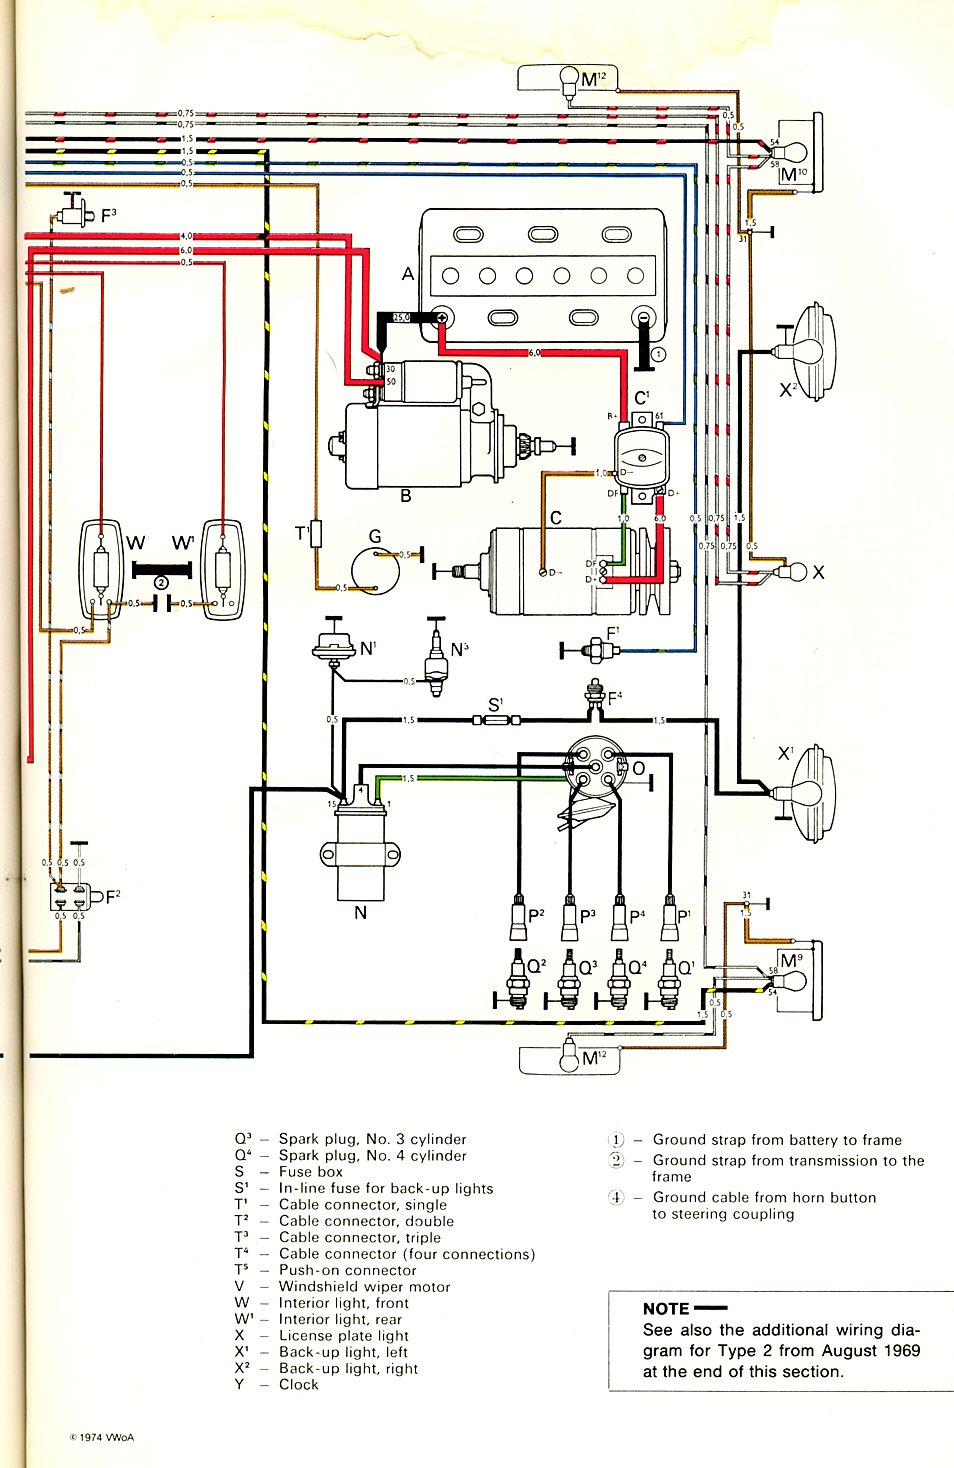 baybus_70b thesamba com type 2 wiring diagrams vw bus samba wiring diagram at bayanpartner.co